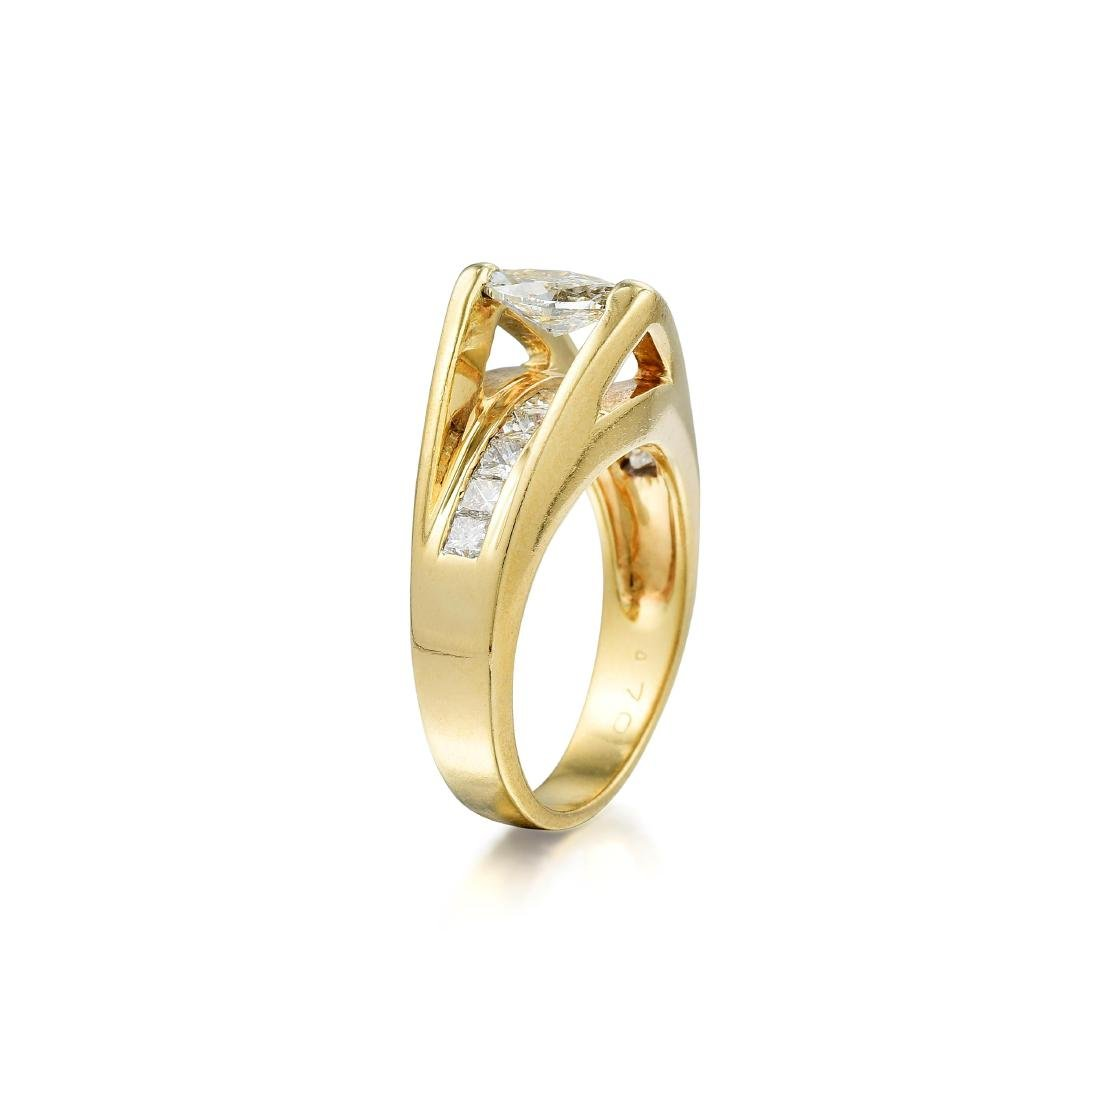 A 14K Gold Marquise Diamond Ring - 2